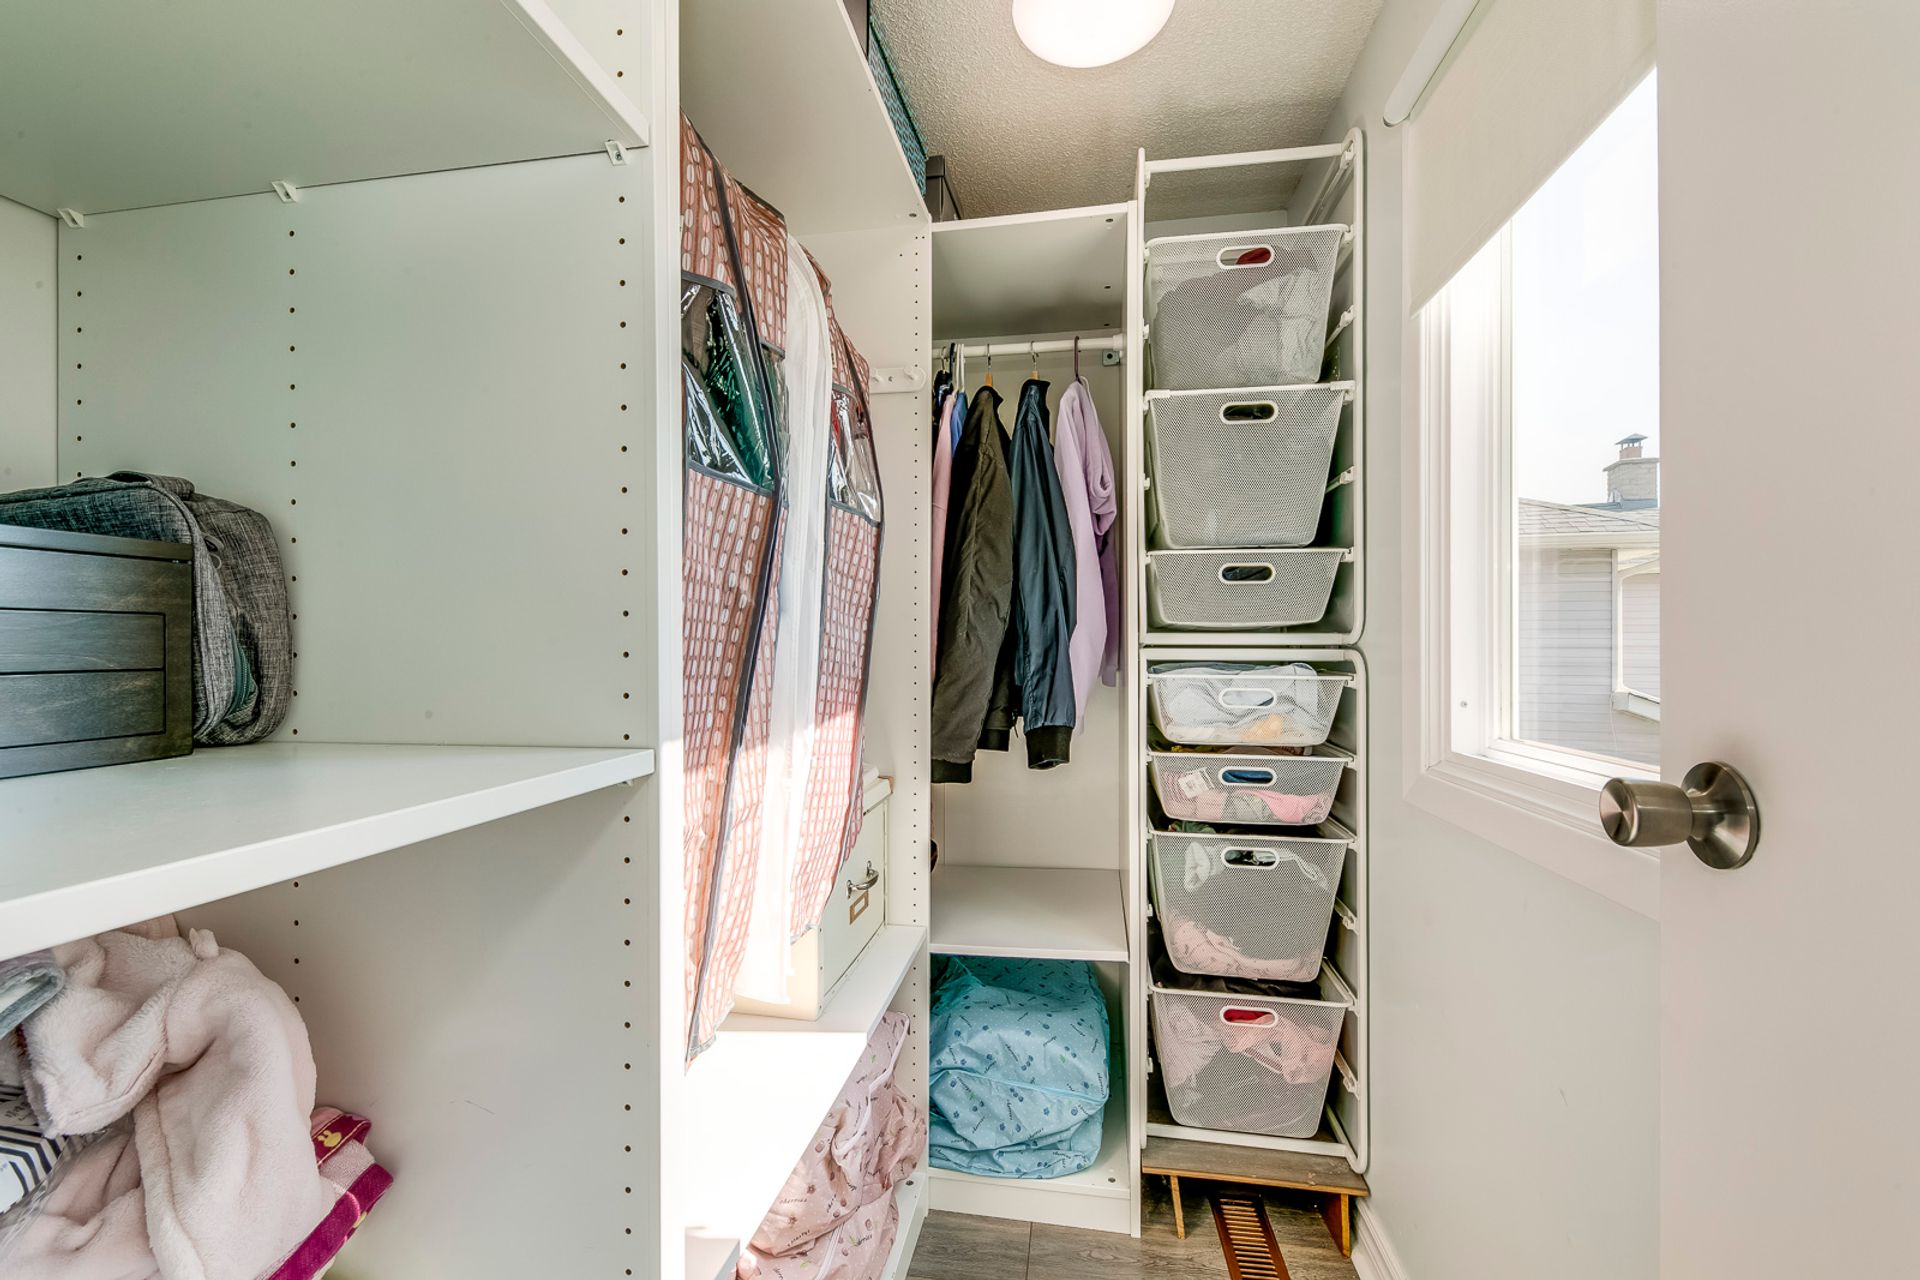 Primary Bedroom Closet - 6278 Lavery Crt, Mississauga - Elite3 & Team at 6278 Lavery Court, Meadowvale, Mississauga